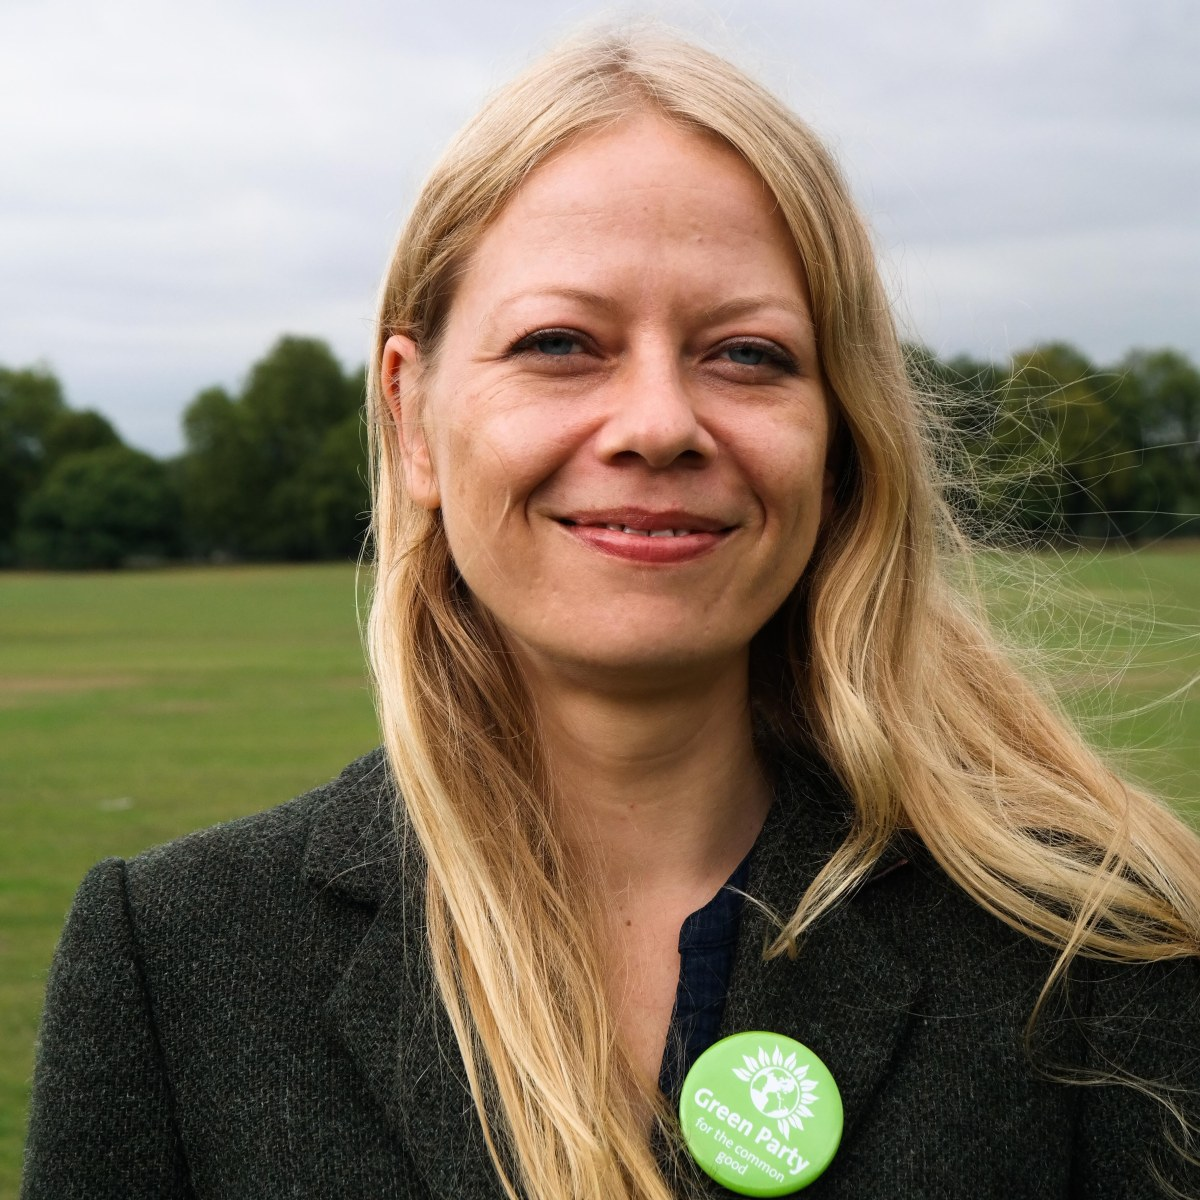 Siân Berry is our candidate for Mayor and lead Assembly candidate